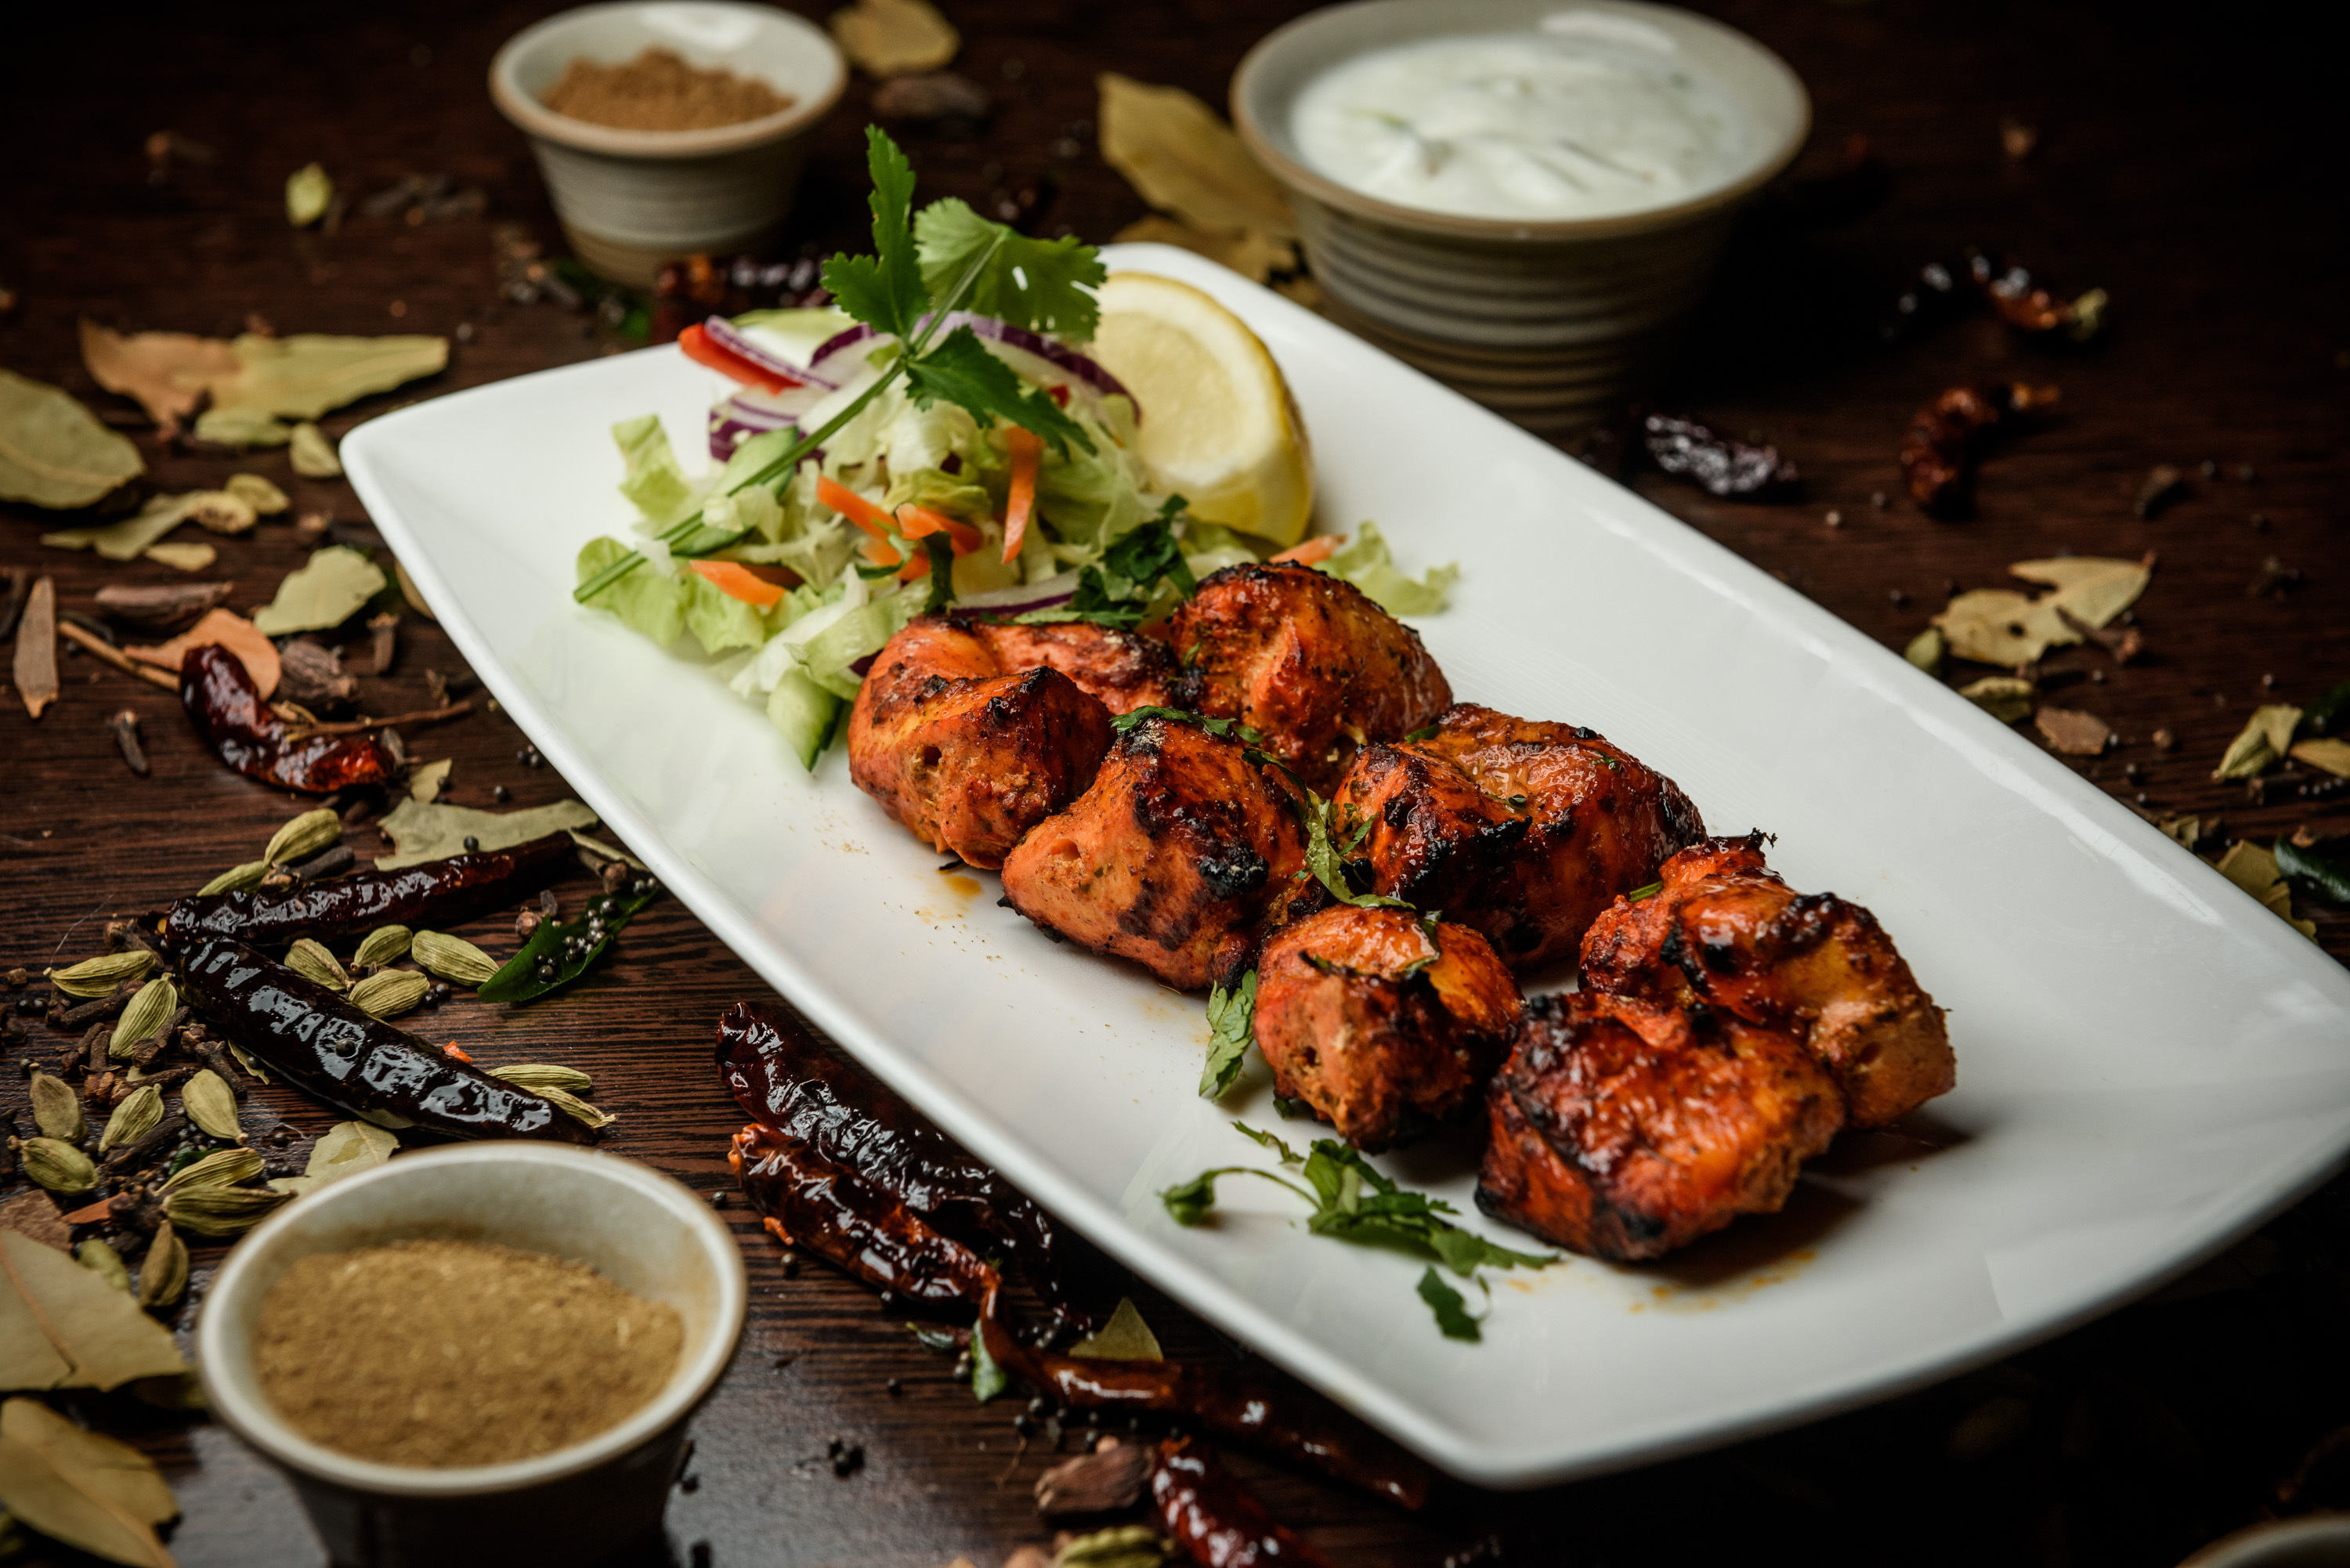 Chicken tikka photo